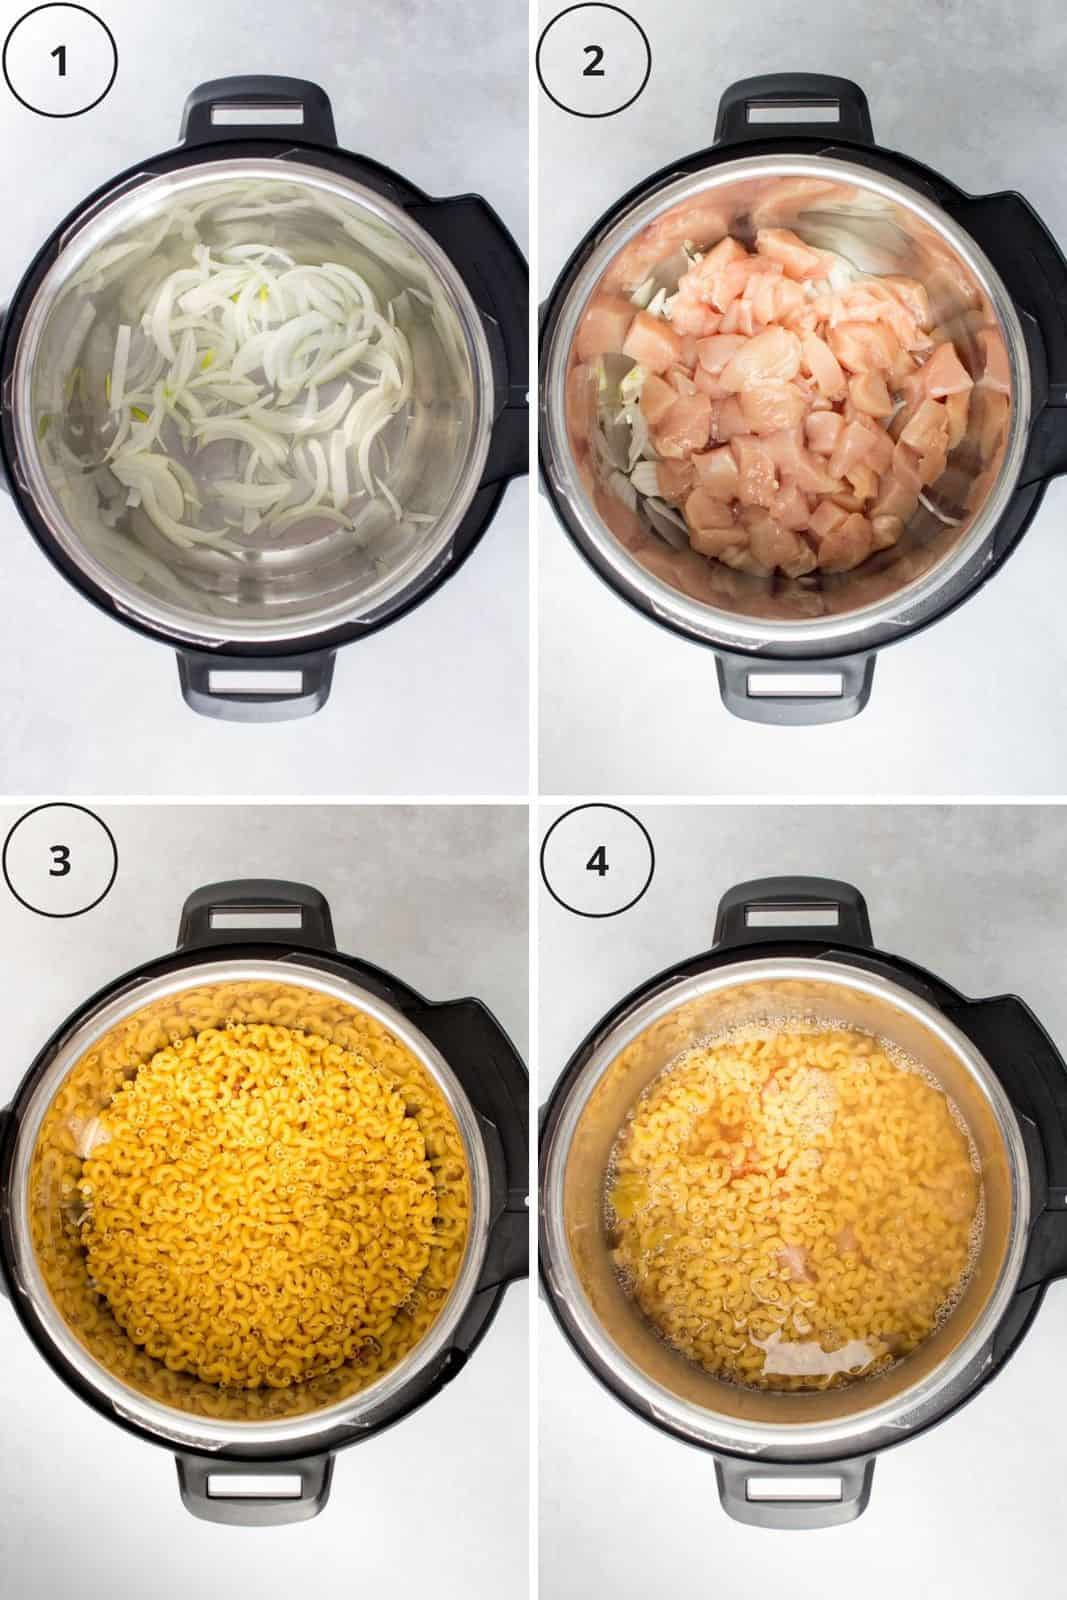 Set of four photos showing onions, chicken, macaroni, and broth added to a pressure cooker.